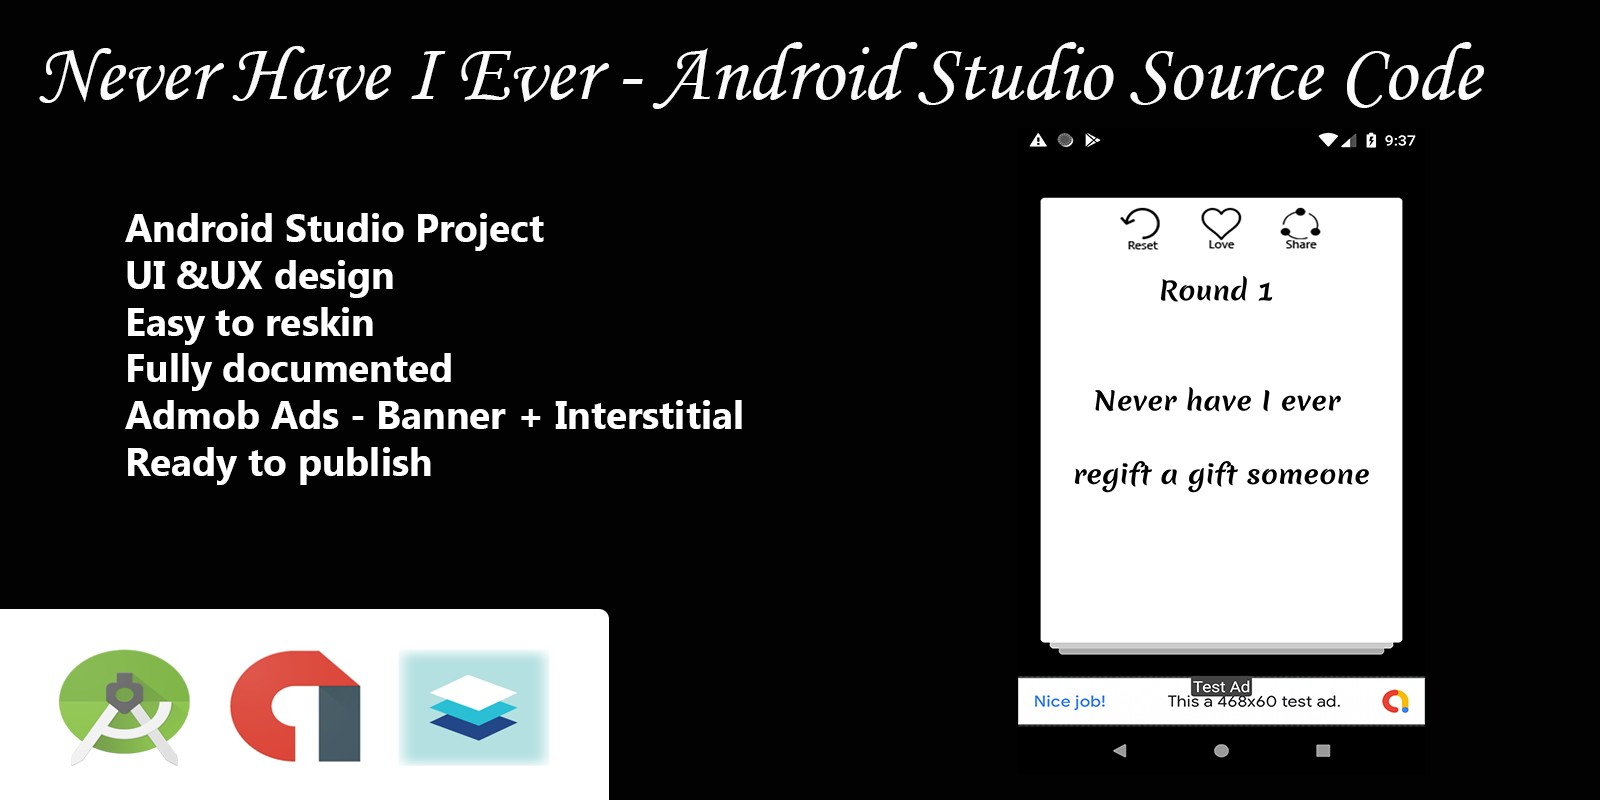 Never Have I Ever - Android Studio Source Code